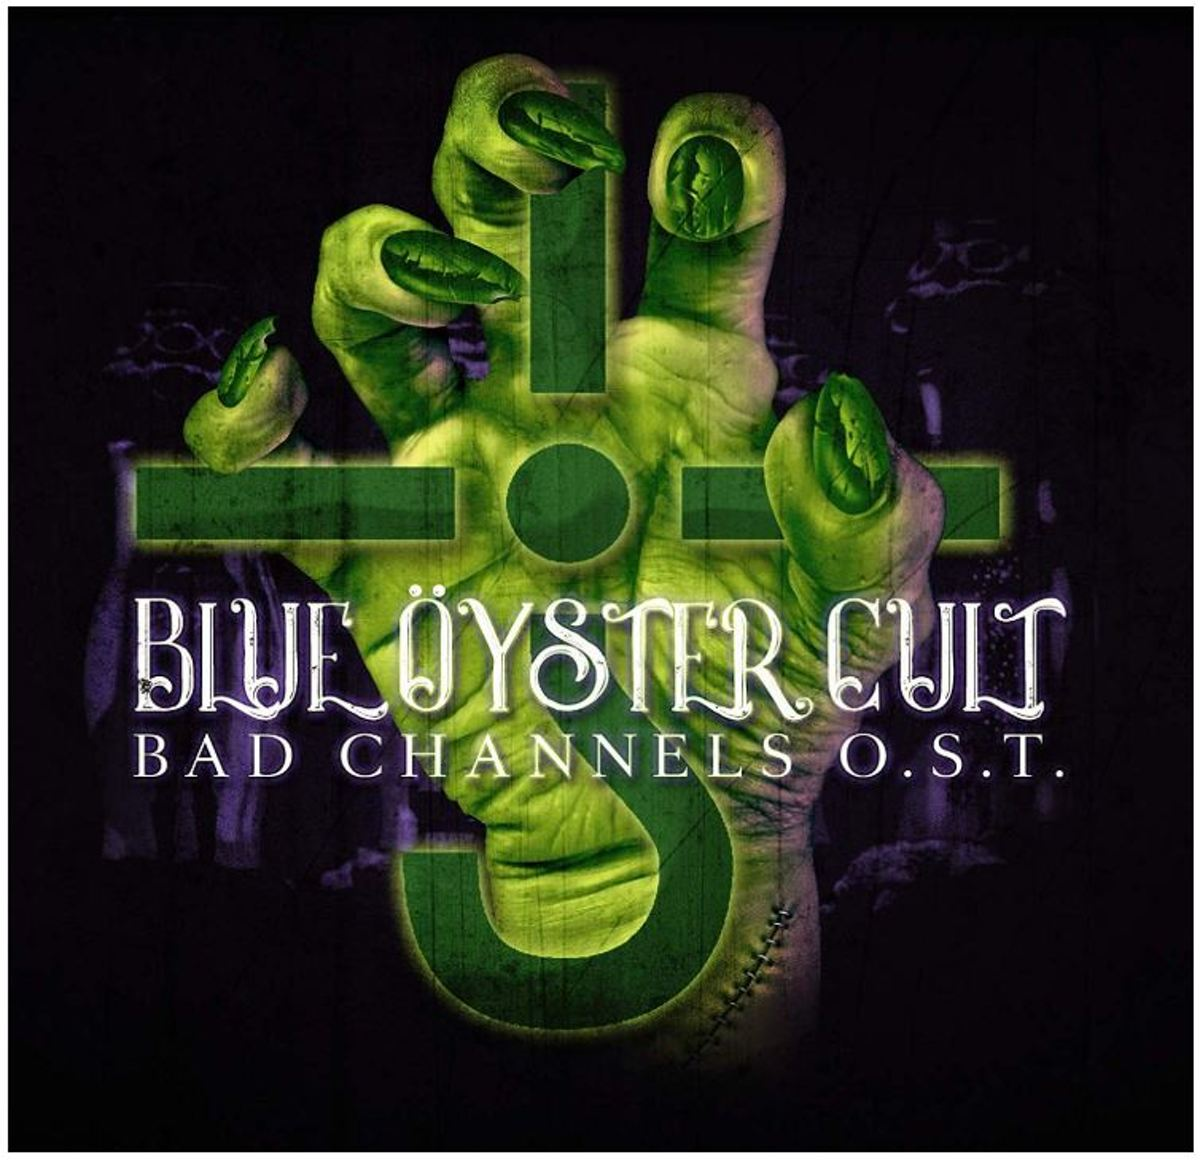 Blue Oyster Cult Cult. Bad Channels O. S. T.